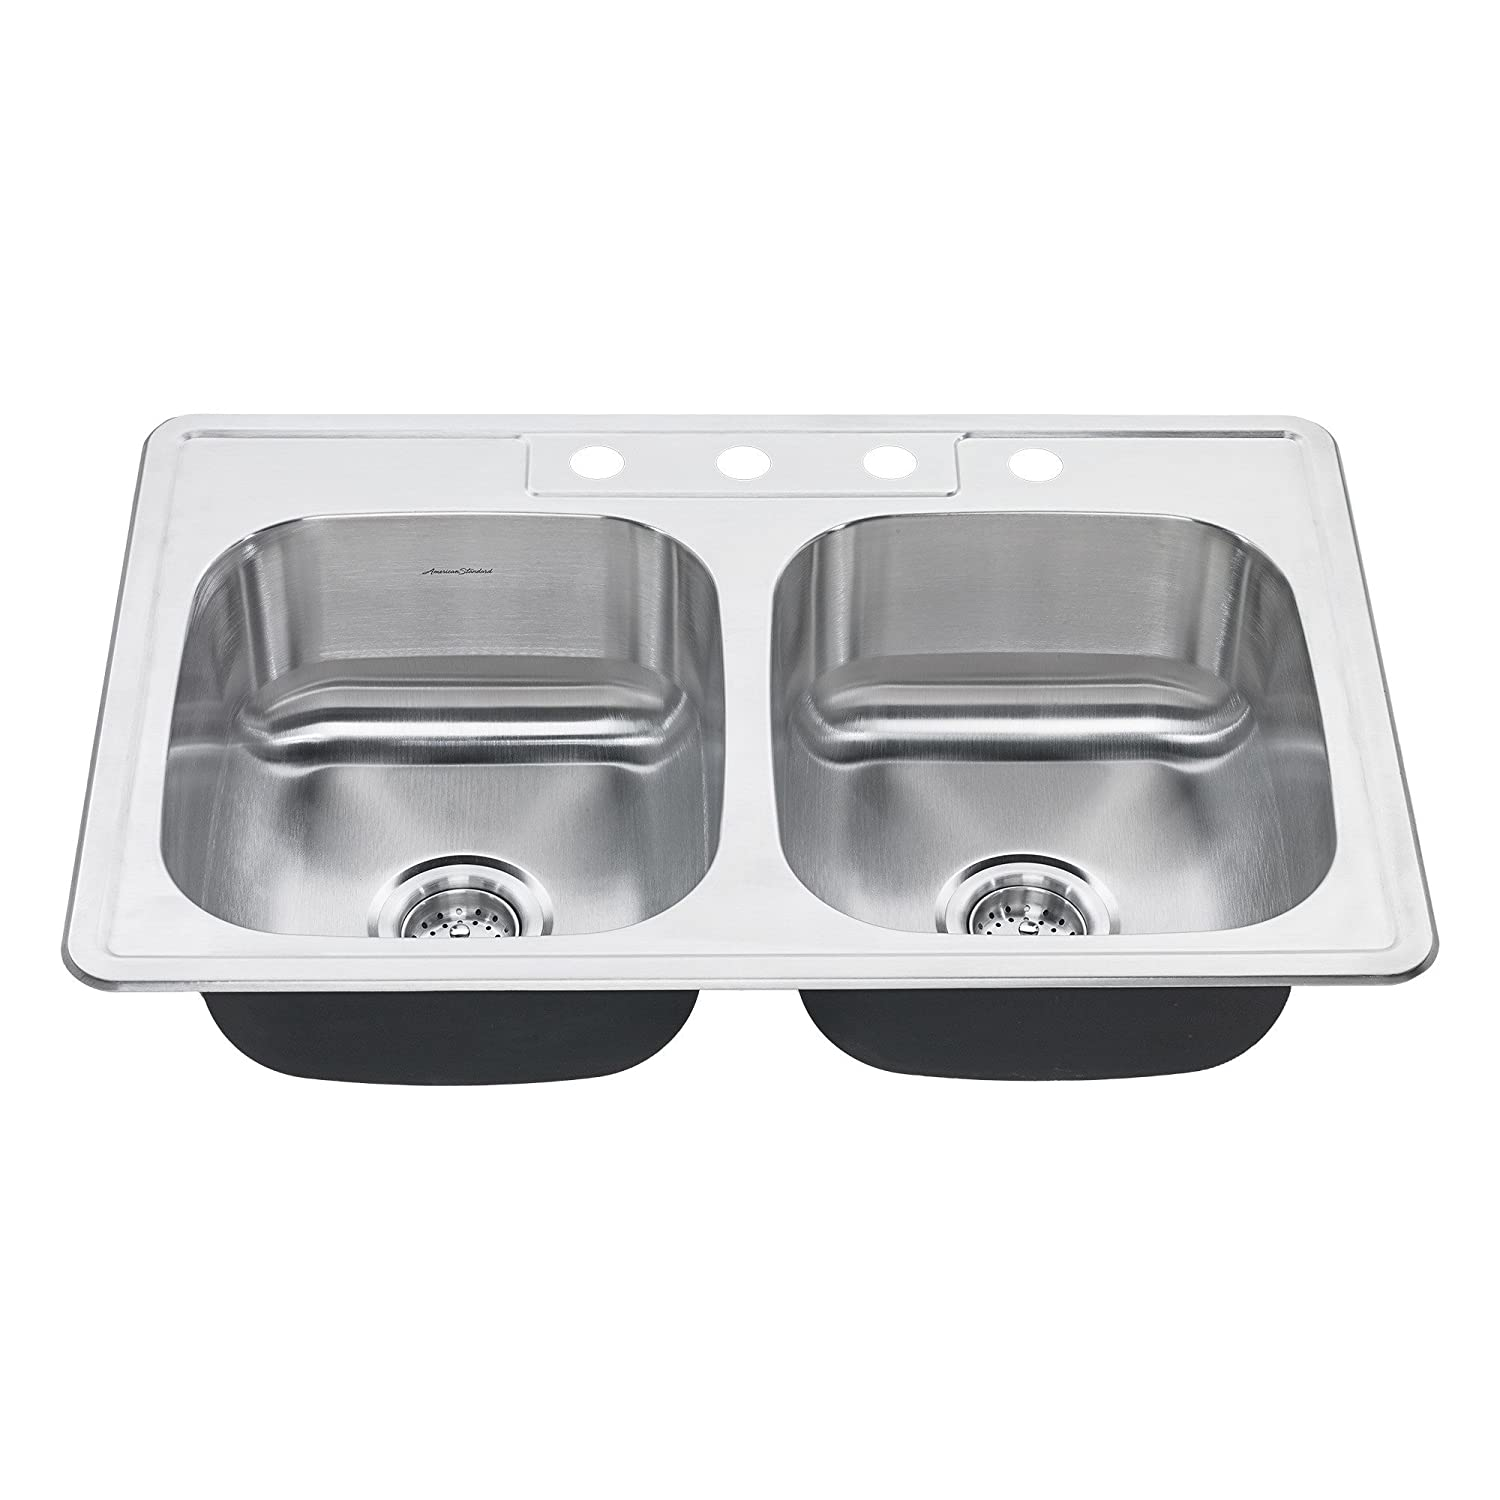 American Standard 20DB.8332284S.075 Colony Top Mount 33x22 Double Bowl Stainless Steel 4-hole Kitchen Sink,